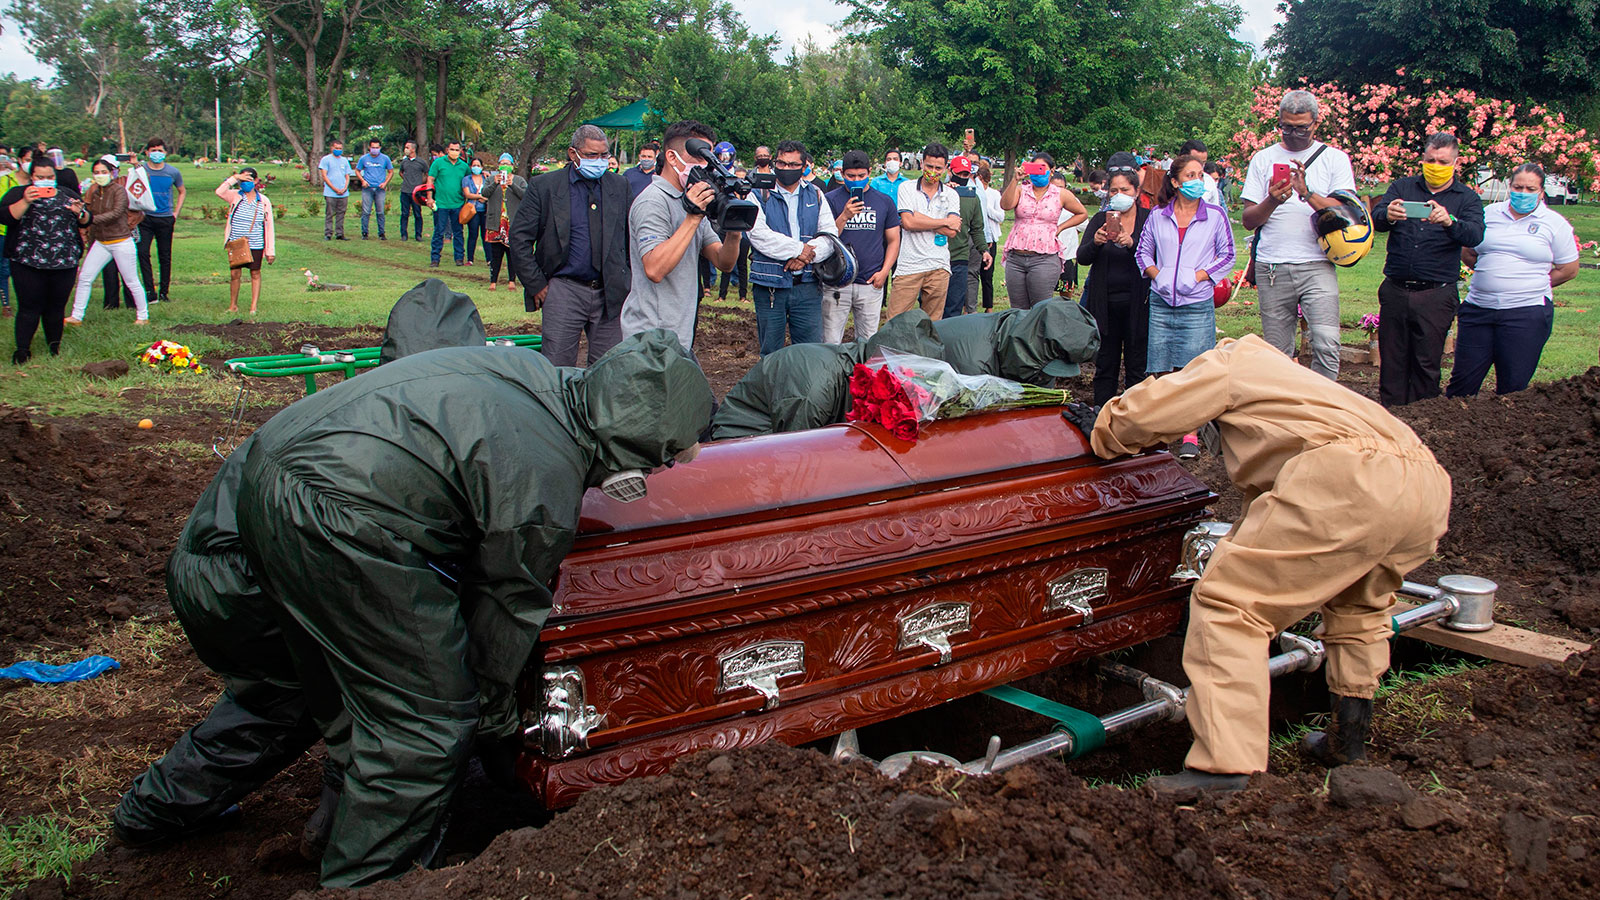 Gravediggers bury the coffin of a pastor, who allegedly died from Covid-19, during his funeral at the Jardines del Recuerdo Cemetery in Managua, Nicaragua on June 5.